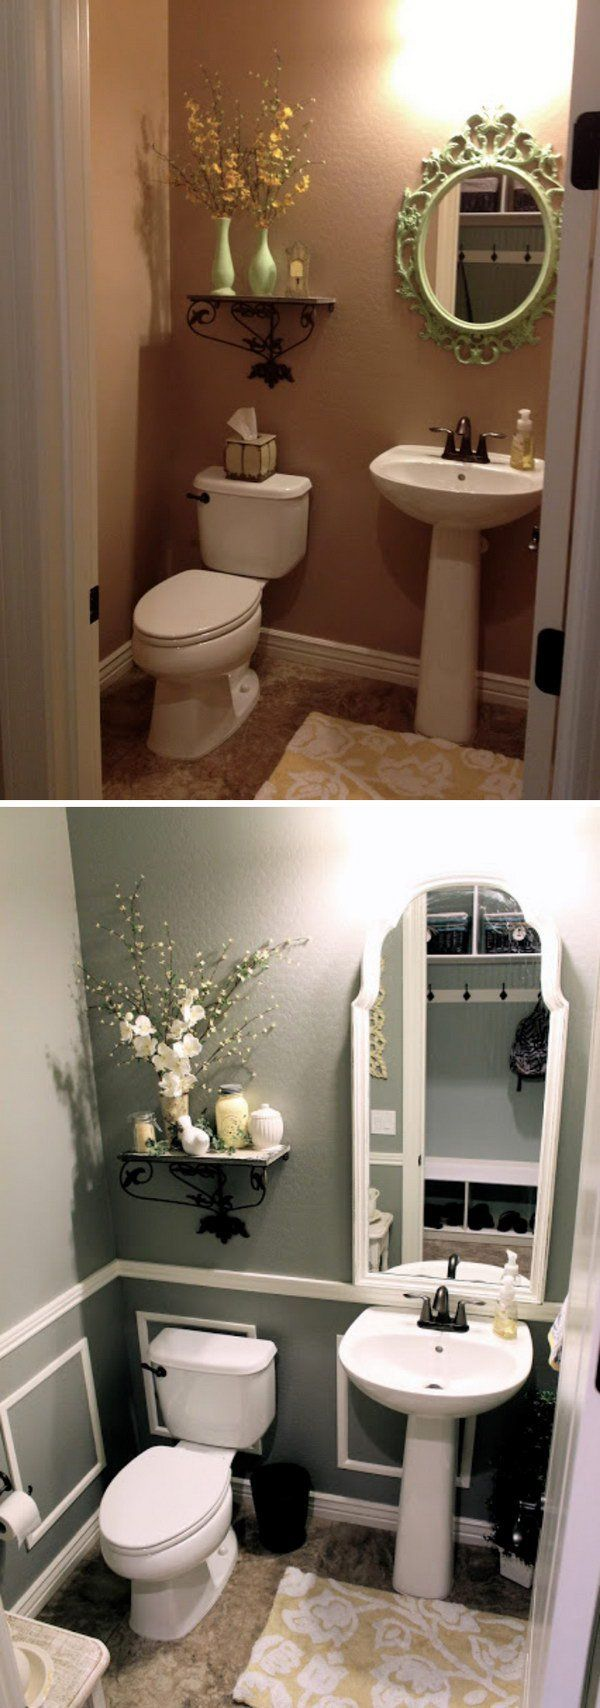 Bathroom Makeovers Wa best 25+ small bathroom makeovers ideas only on pinterest | small